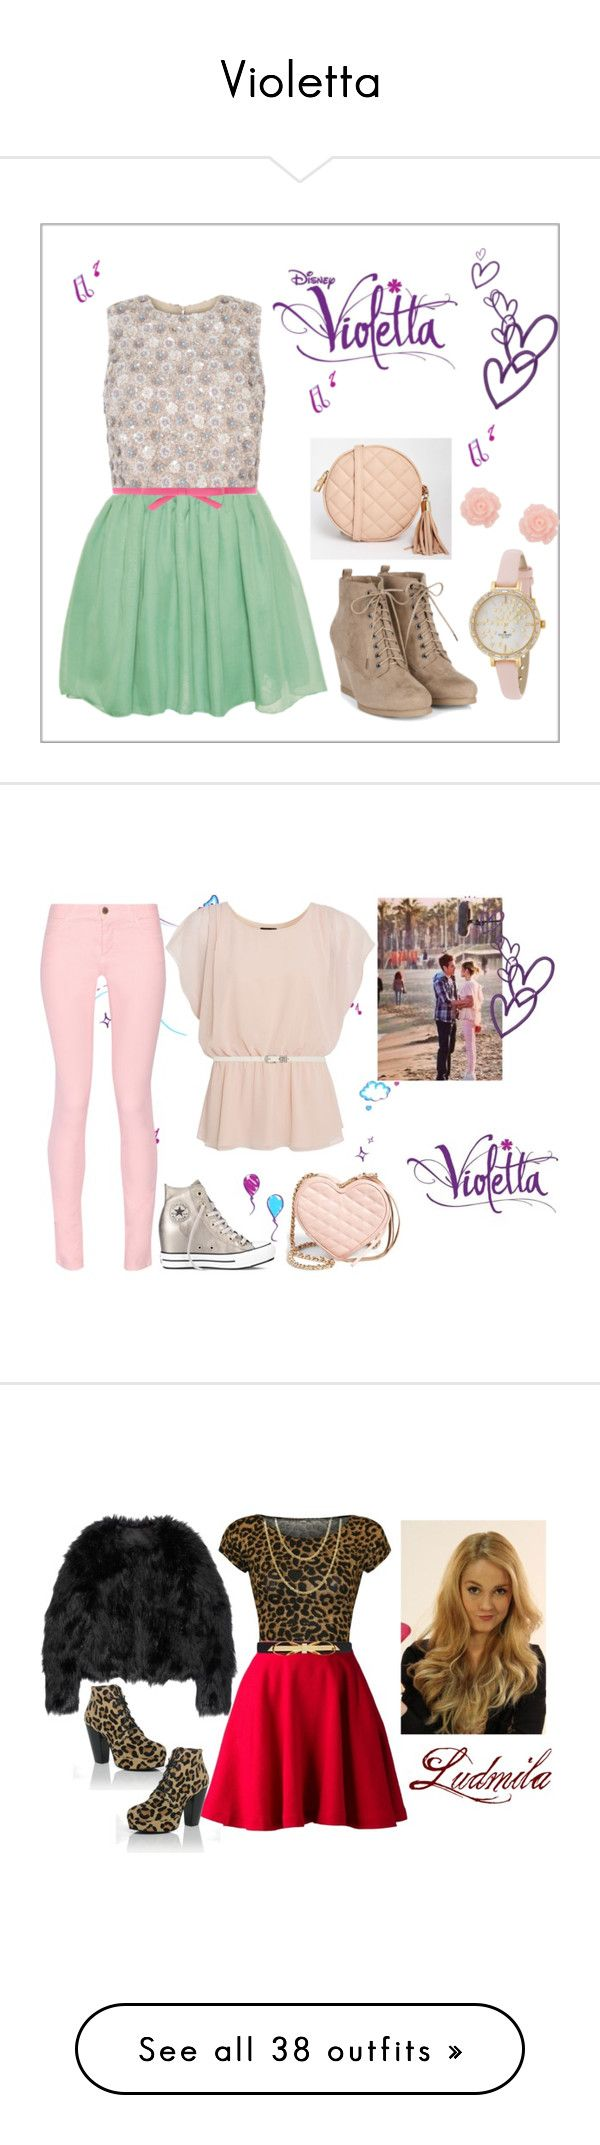 """""""Violetta"""" by stylewiktoria ❤ liked on Polyvore featuring Hearts & Bows, Kate Spade, White House Black Market, ASOS, ANNA, Ultimo, Maison Kitsuné, Converse, Forever New and Rebecca Minkoff"""